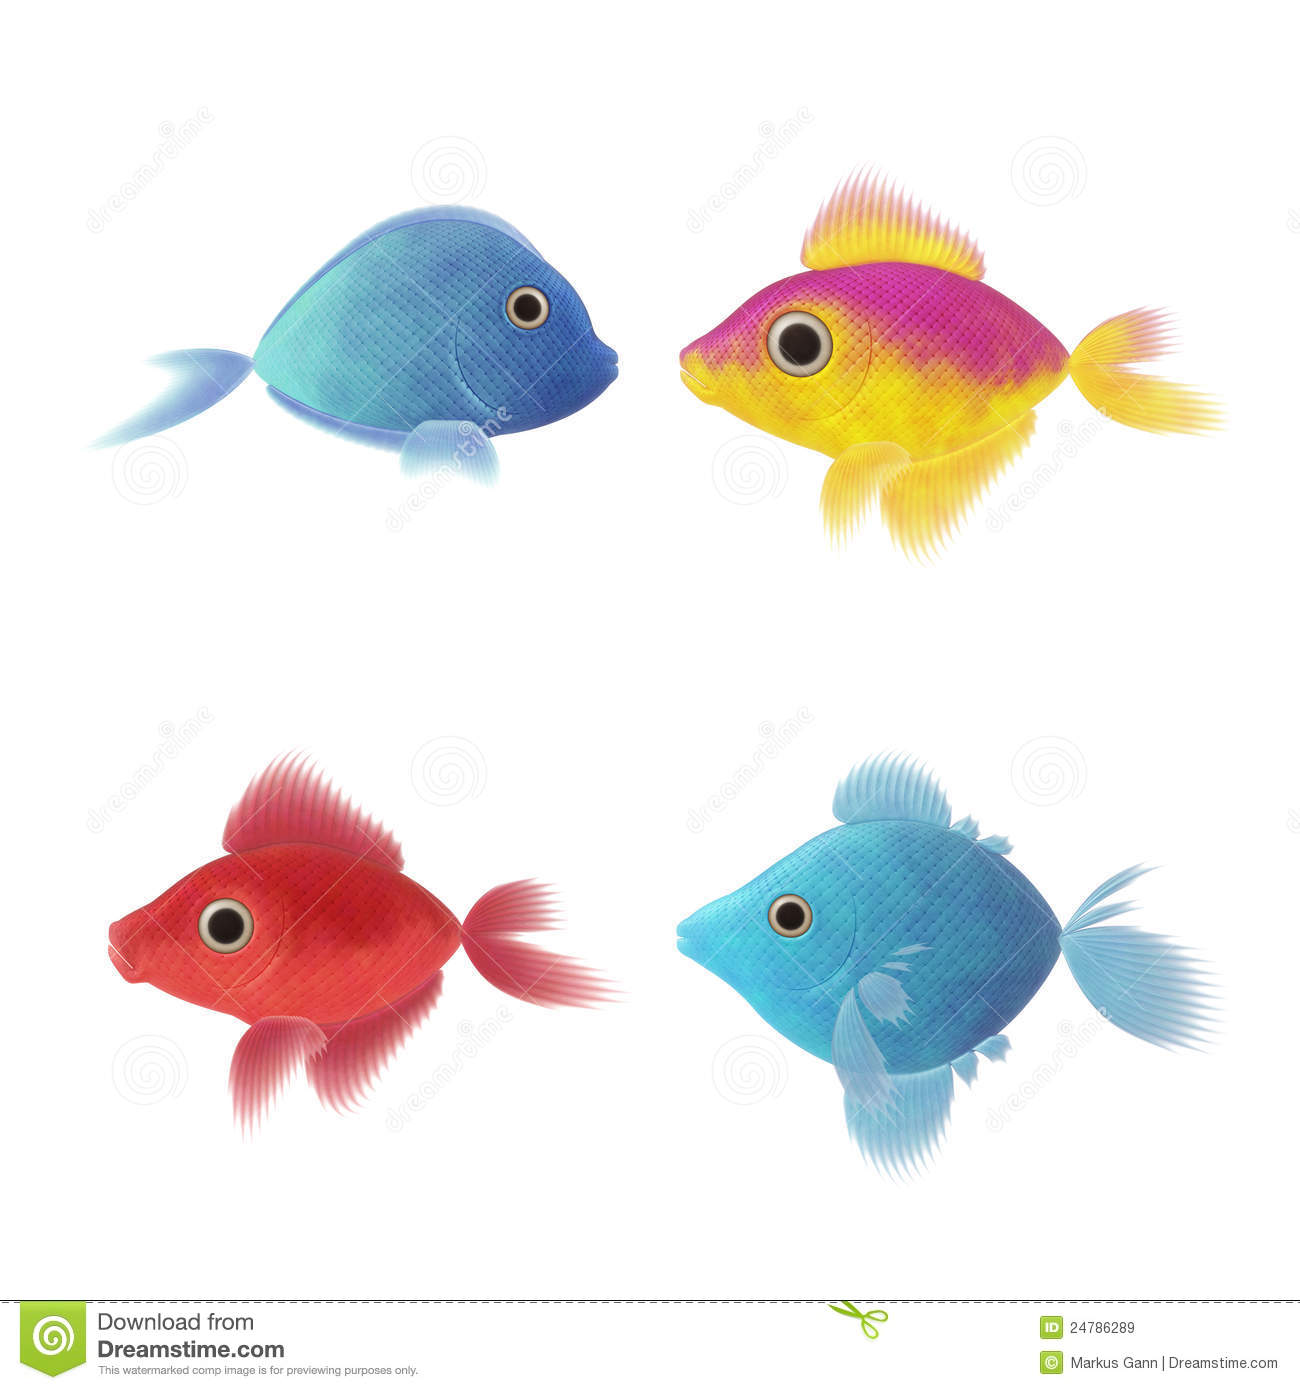 Red Animal Print Wallpaper Four Fish Illustrations Royalty Free Stock Images Image